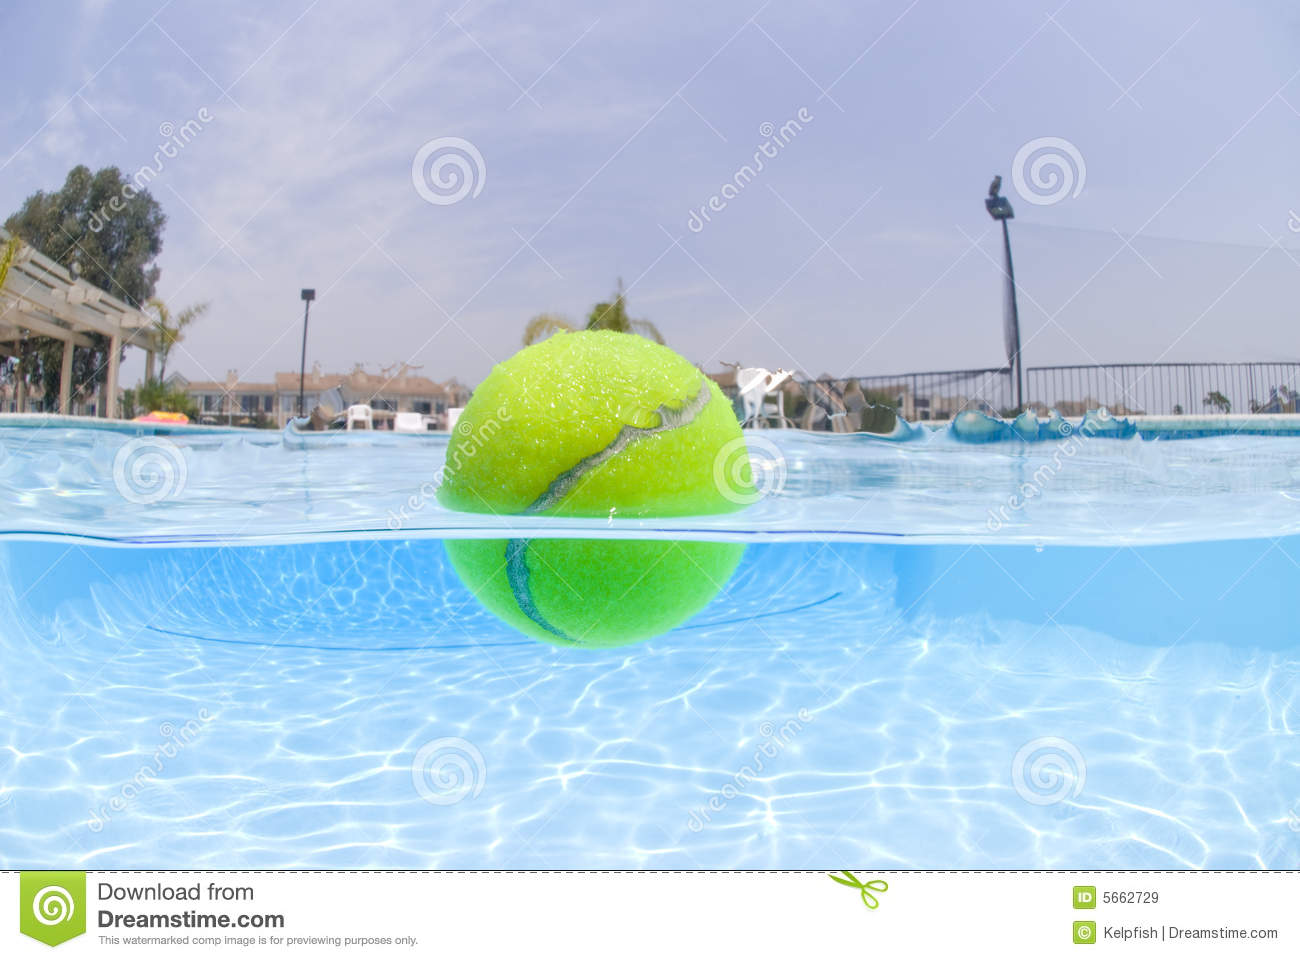 Tennis Ball Floating In Pool Stock Image Image Of Recreation Surface 5662729